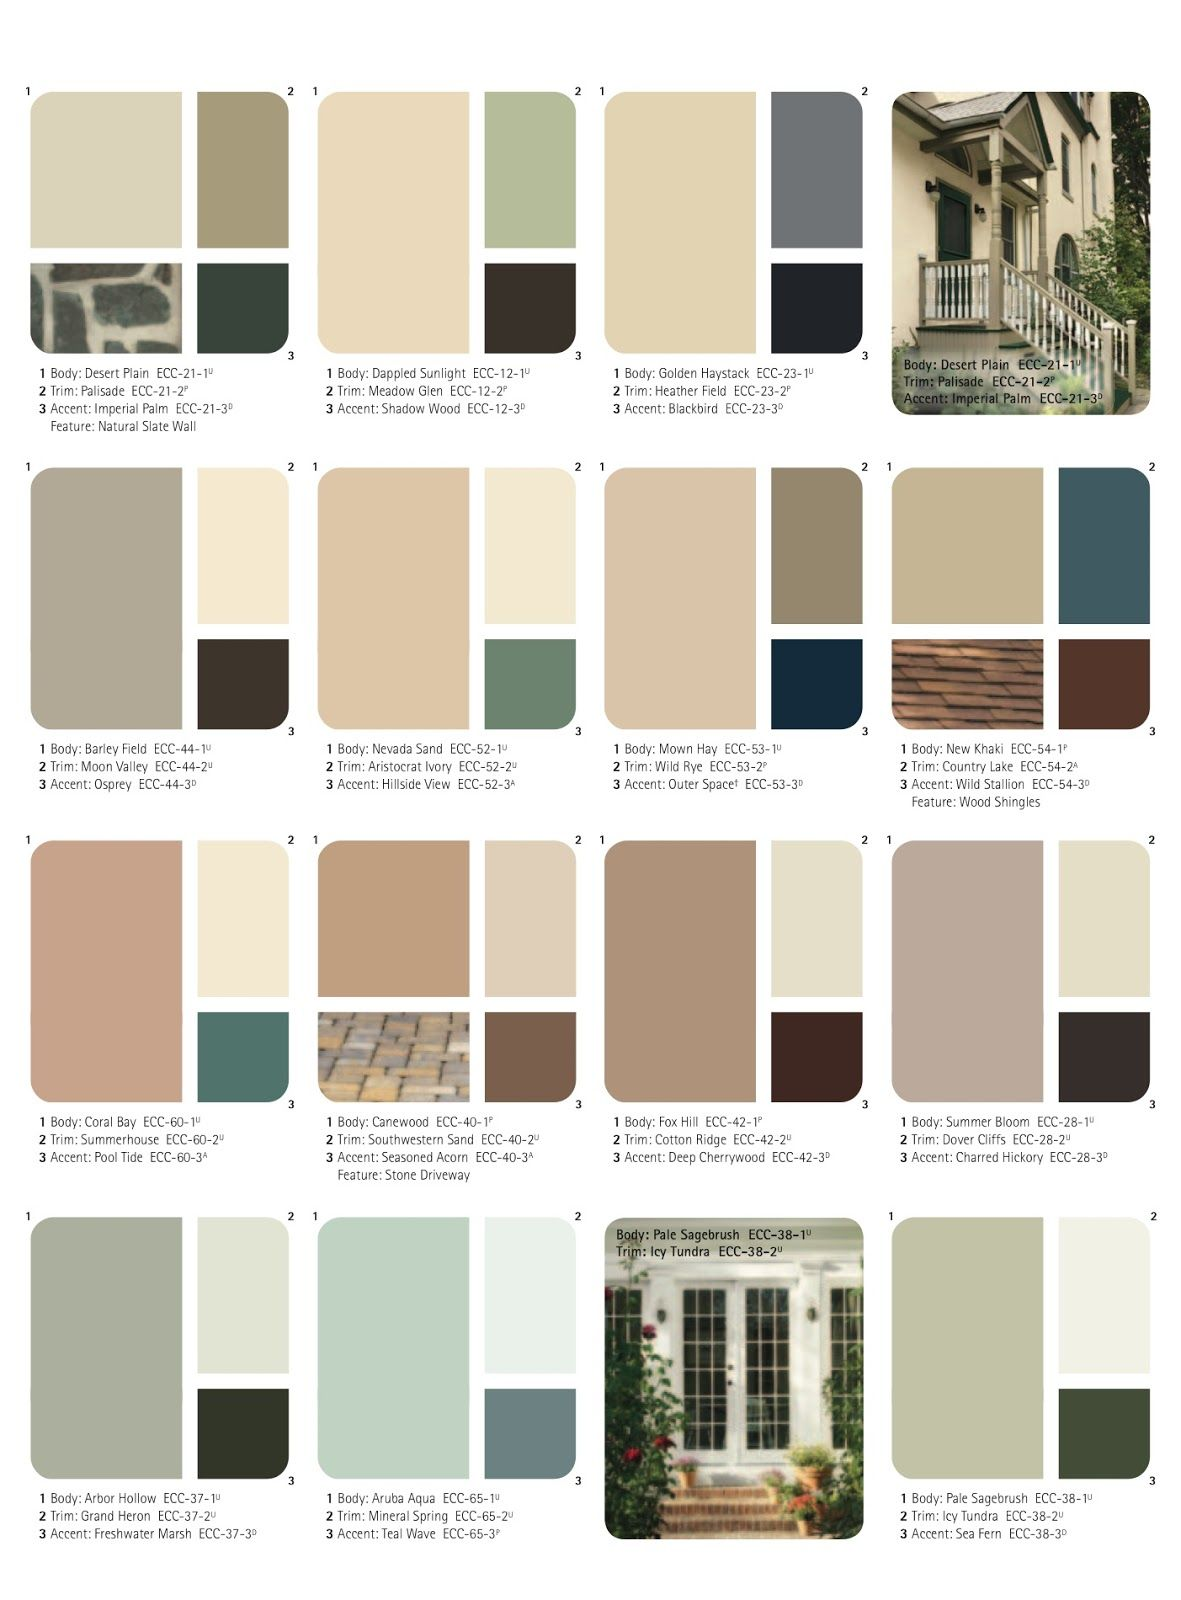 Ange S Dollhouse Choosing The Exterior Color Scheme Outside House Paint Colors Outside House Paint House Paint Color Combination